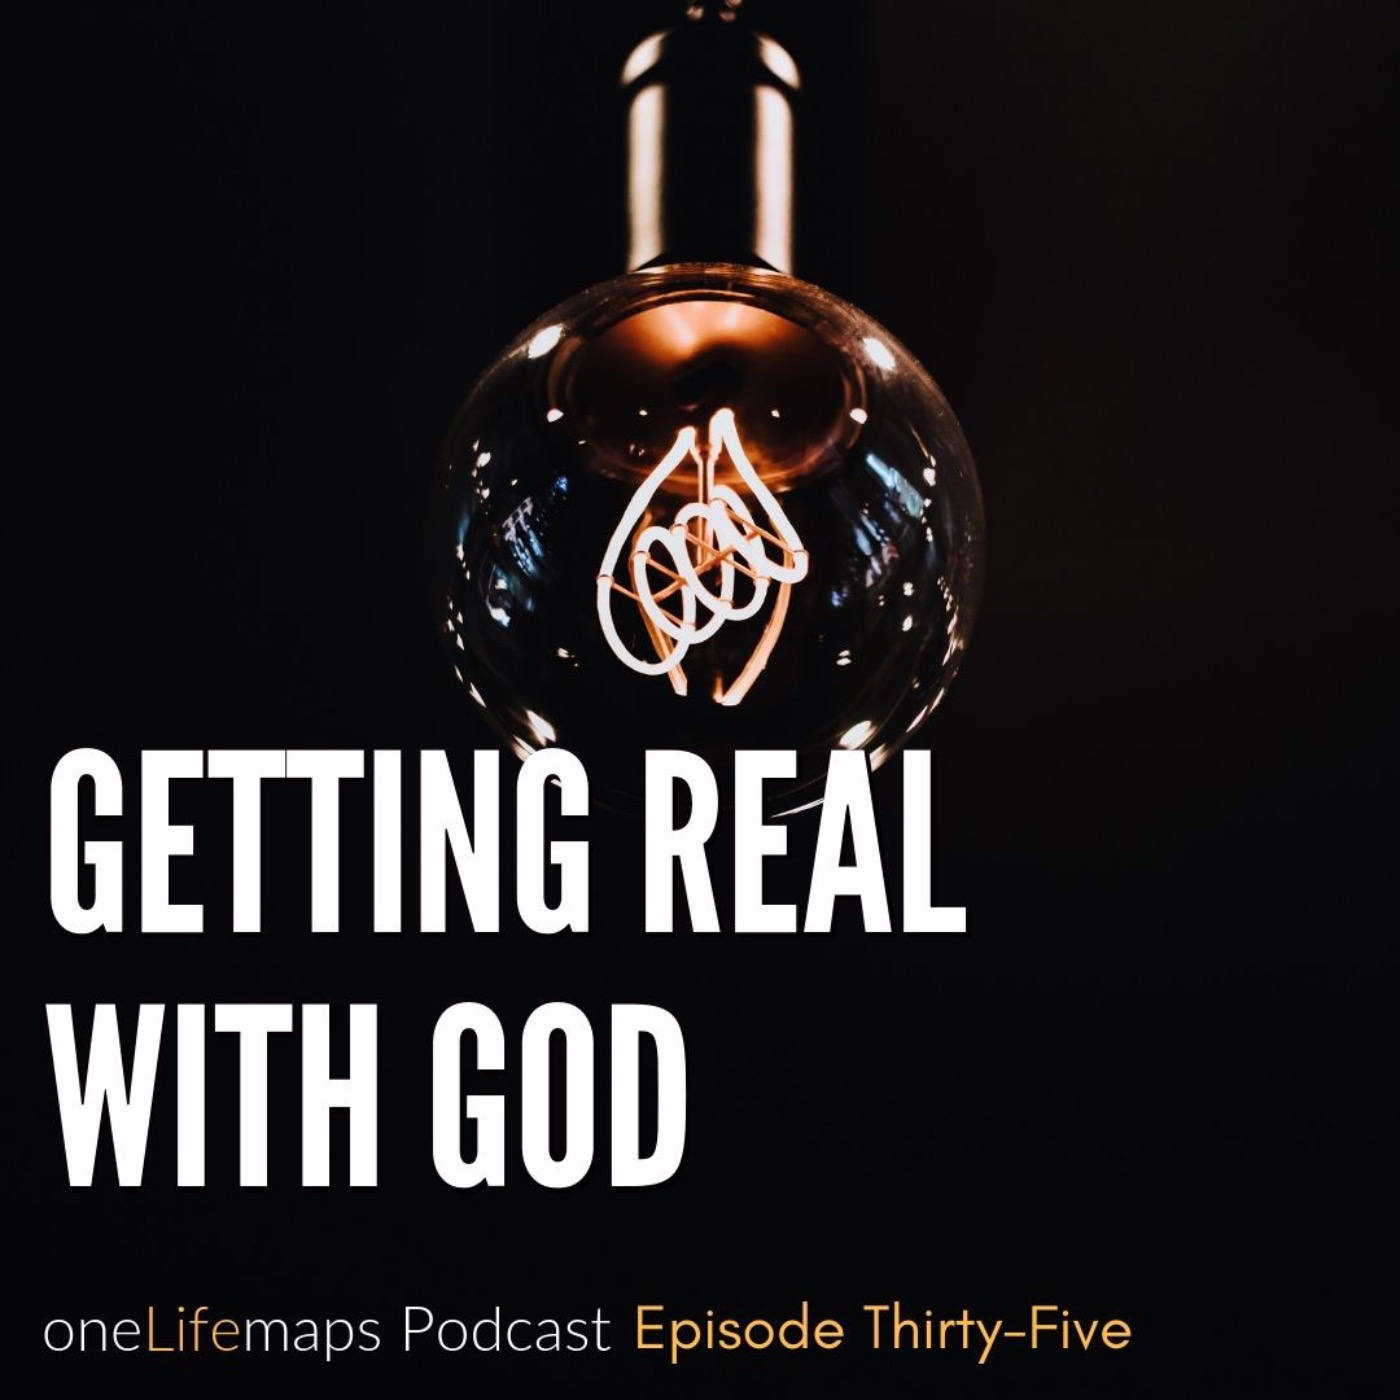 Getting Real with God